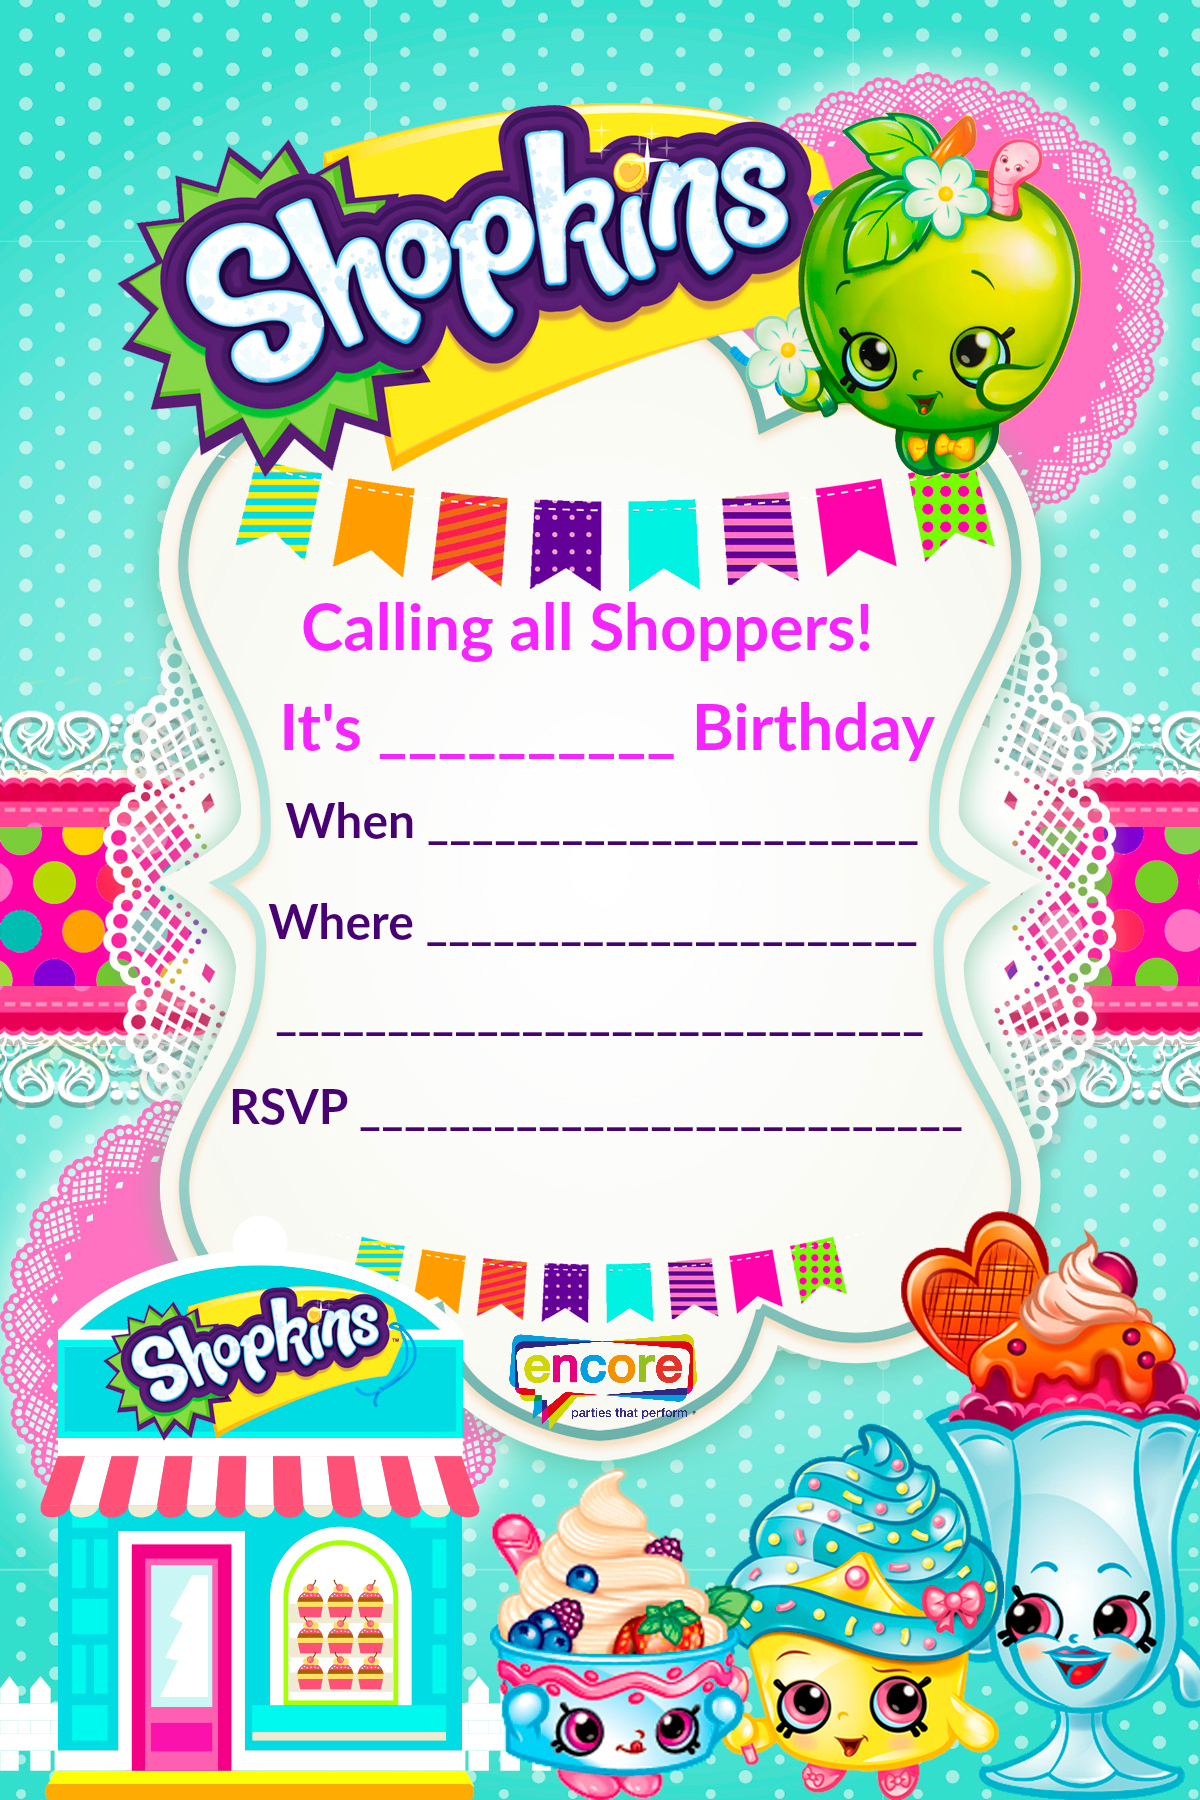 Shopkins party invite download free encore kids parties shopkins party invite download free filmwisefo Images